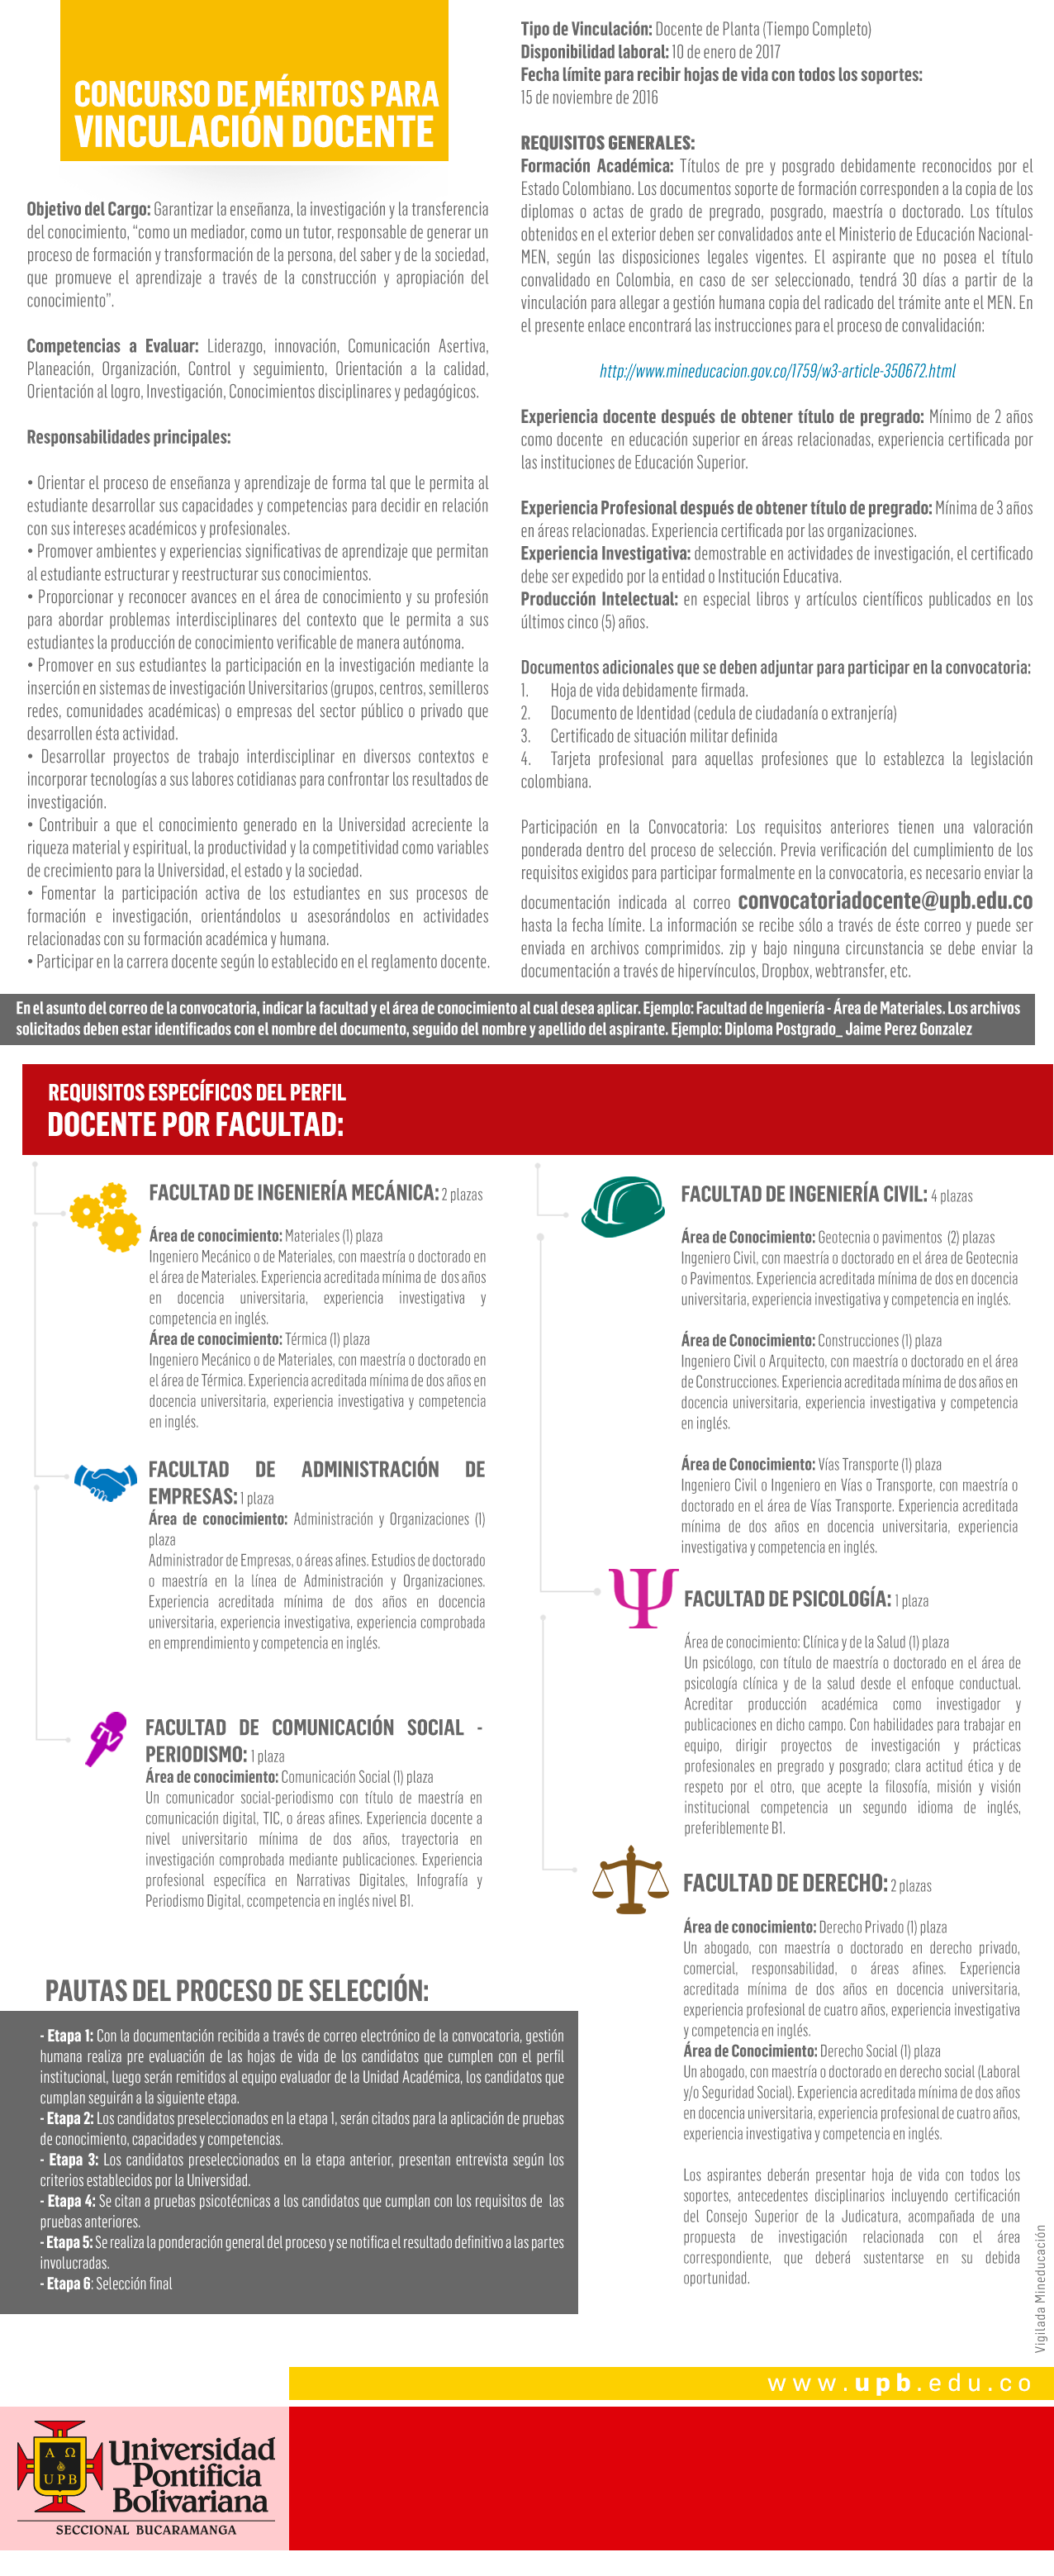 Convocatoria docente universidad pontificia bolivariana for Convocatoria para las plazas docentes 2016